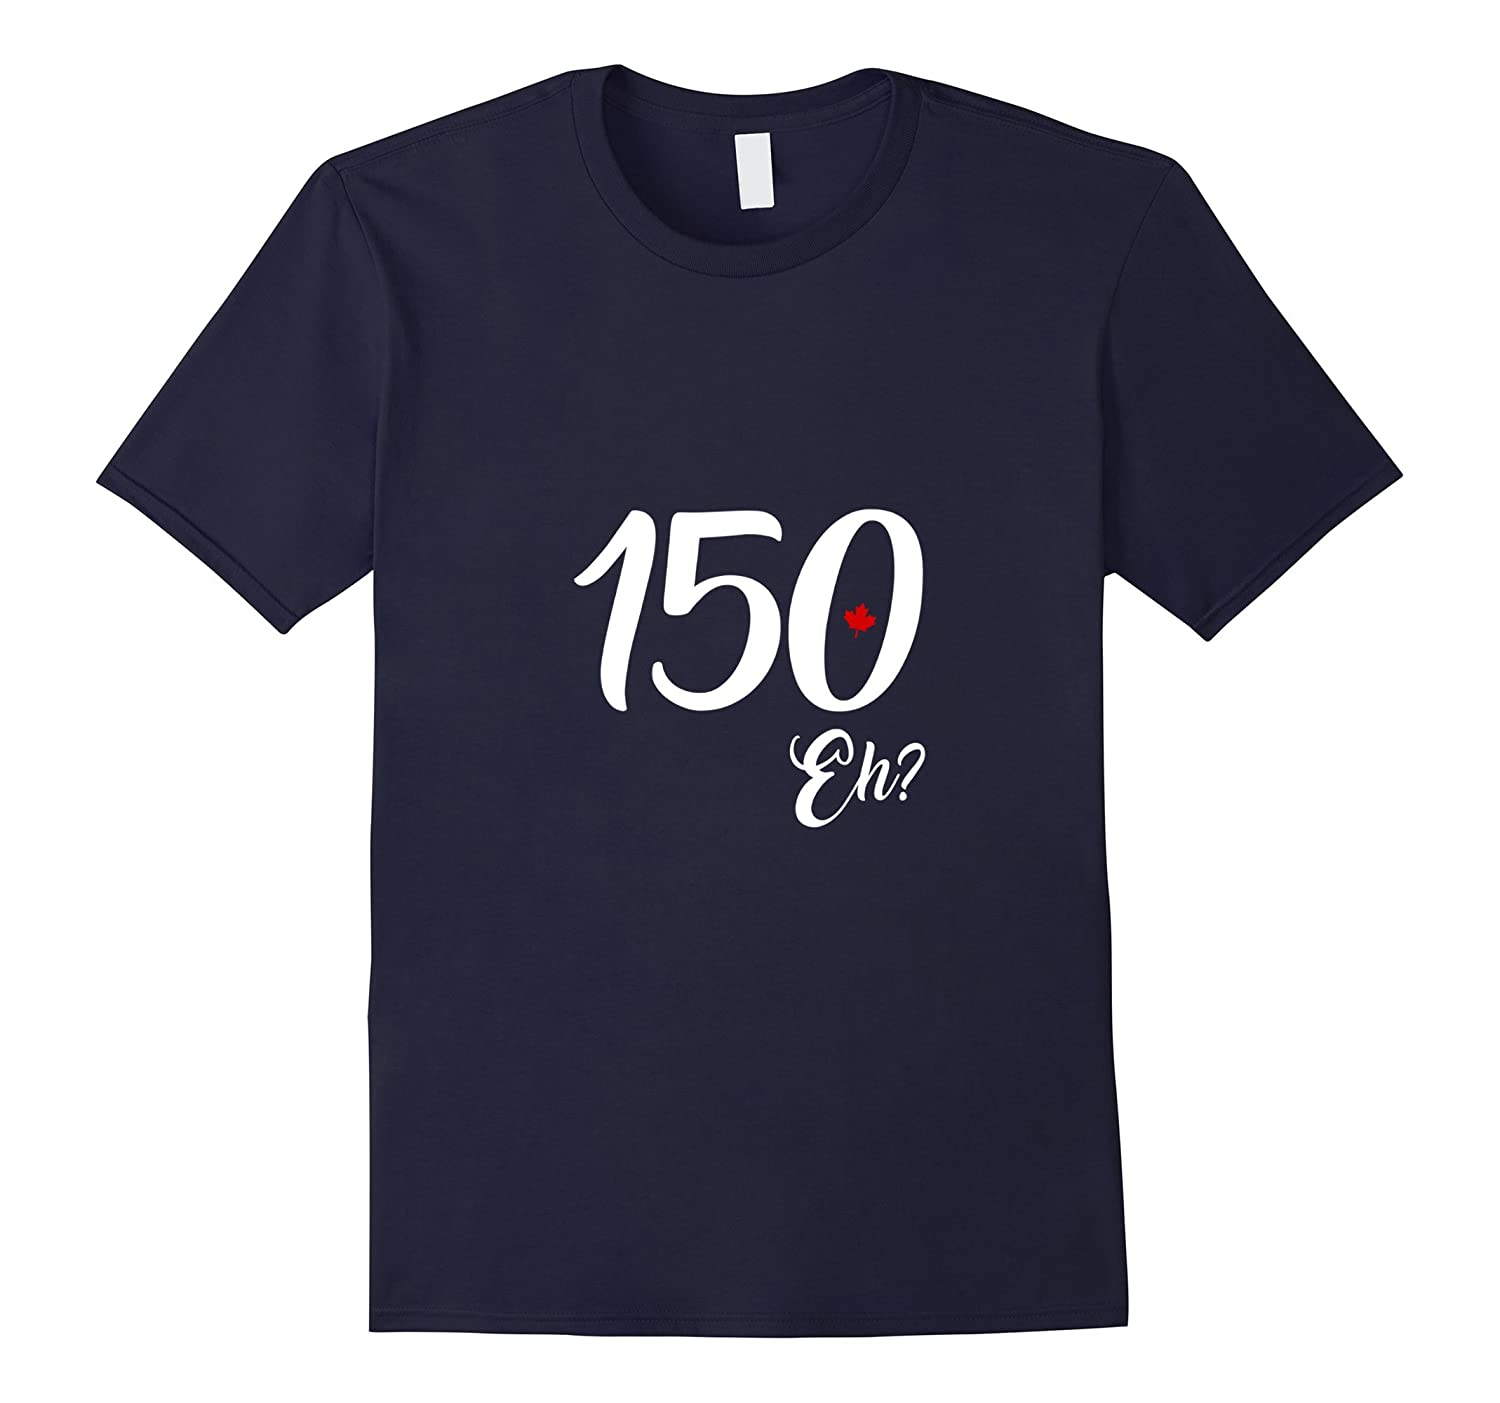 150 Eh? Canada Day T-Shirt-TH